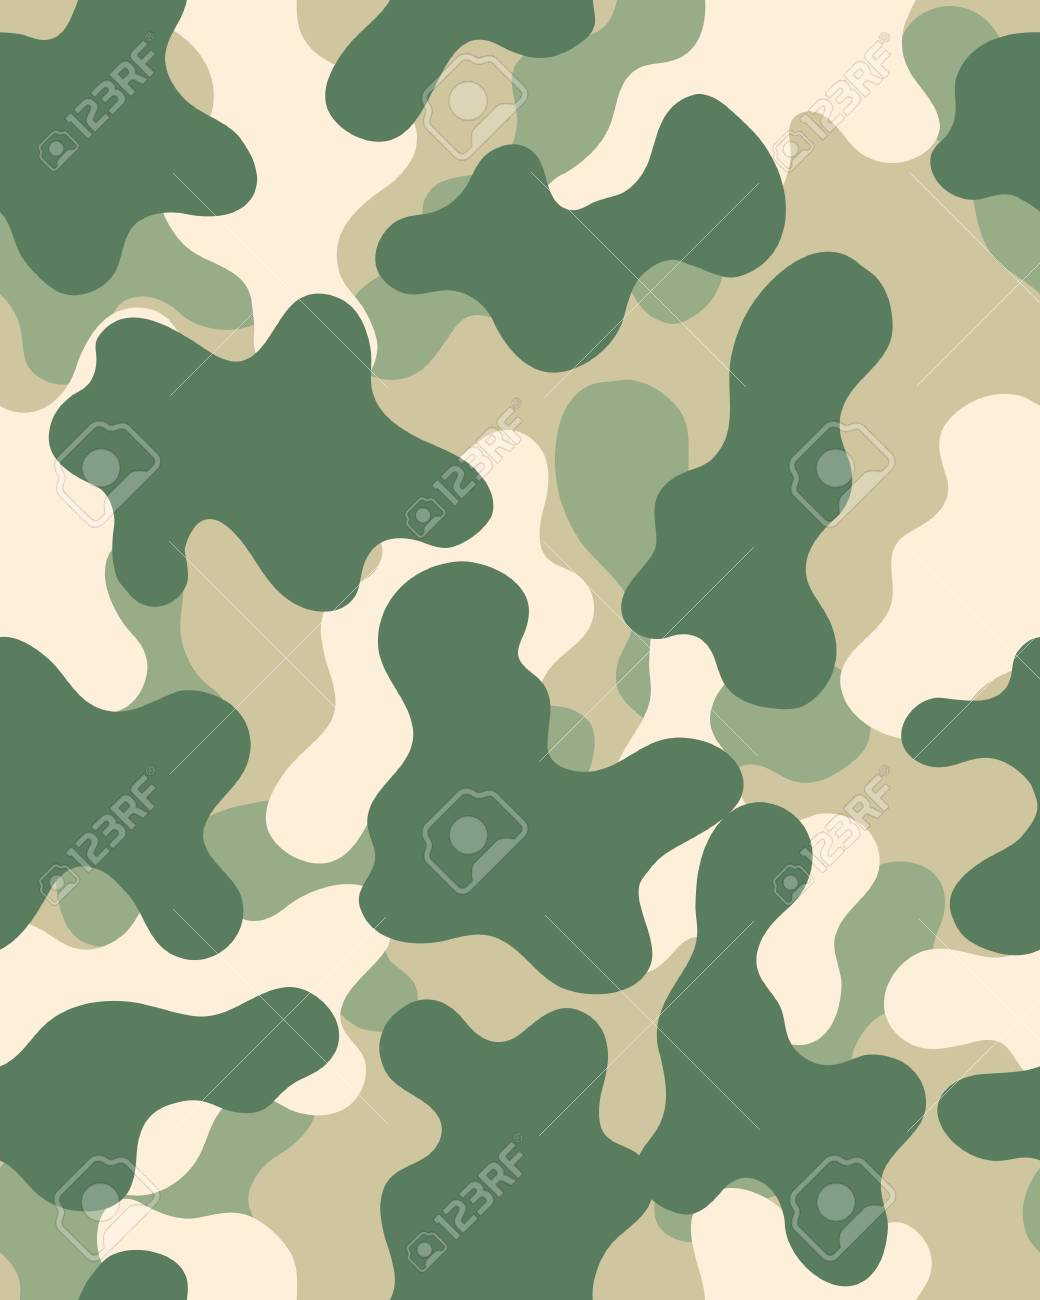 Camouflage Pattern Seamless Army Wallpaper Military Design Abstract